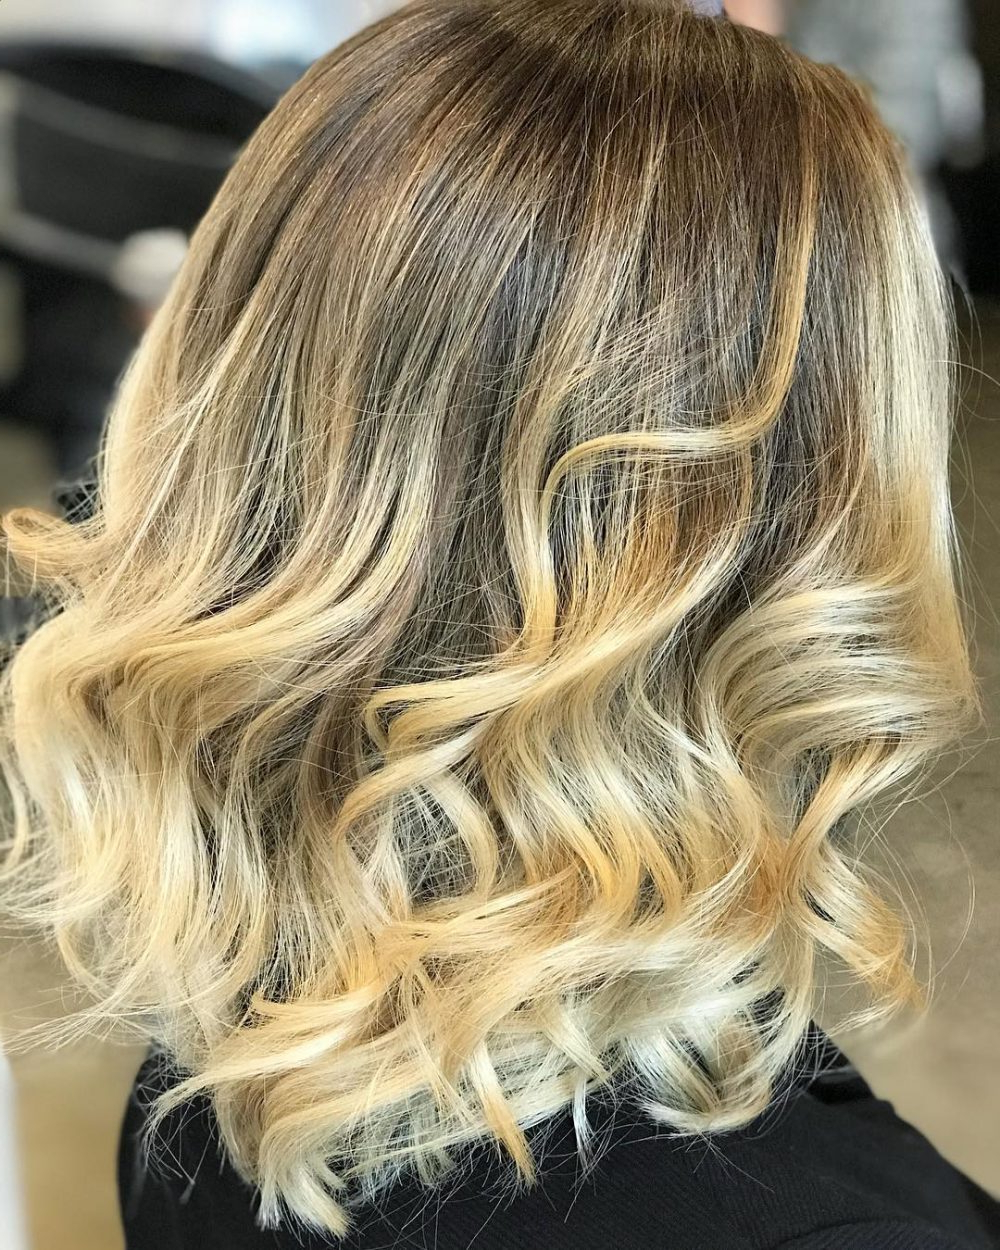 36 Curled Hairstyles Tending In 2018 – So Grab Your Hair Curling Wand! With Short Bob Hairstyles With Whipped Curls And Babylights (View 5 of 20)